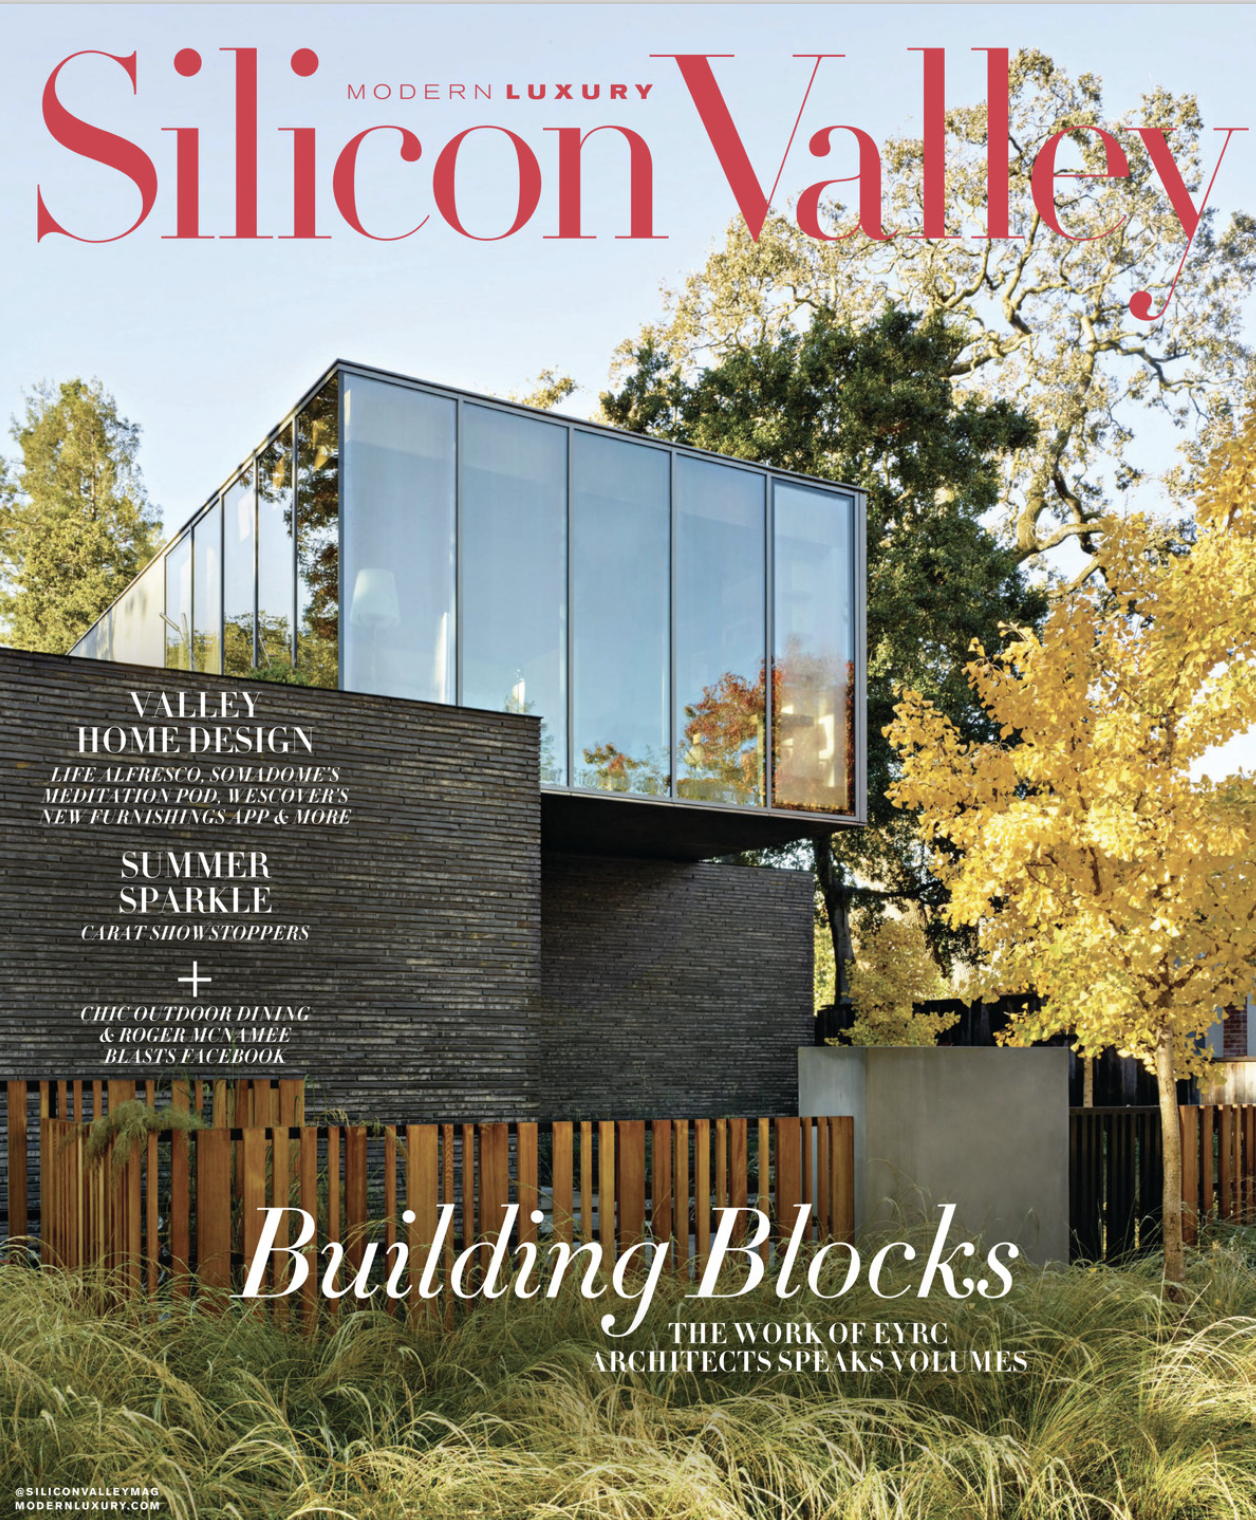 Cover of Modern Luxury Silicon Valley showing a modern home.